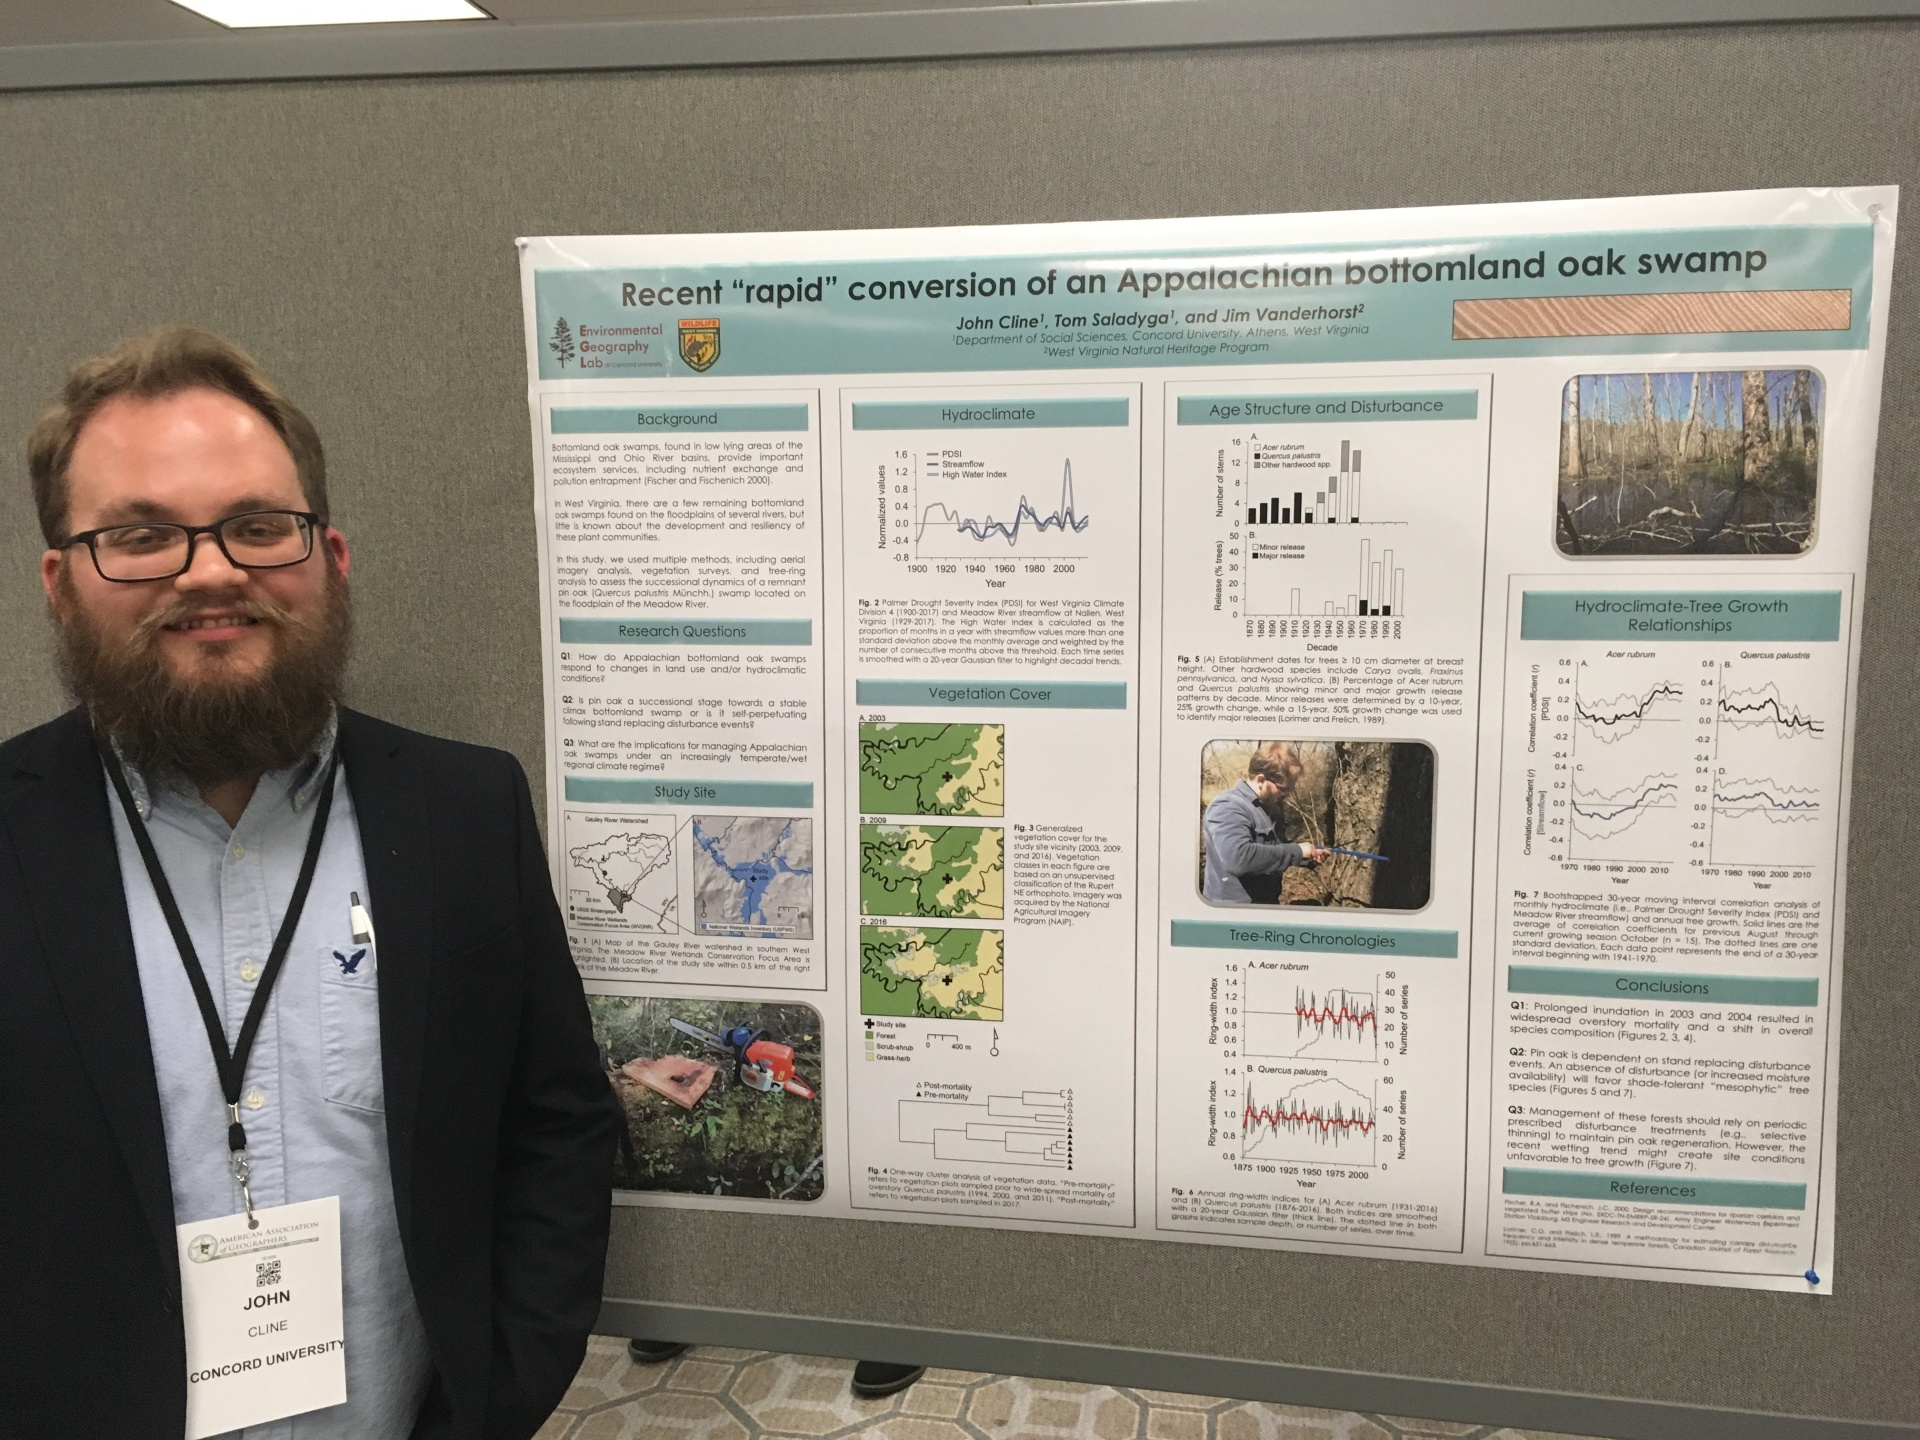 Bottomland Oak Swamp Research @ AAG 2019